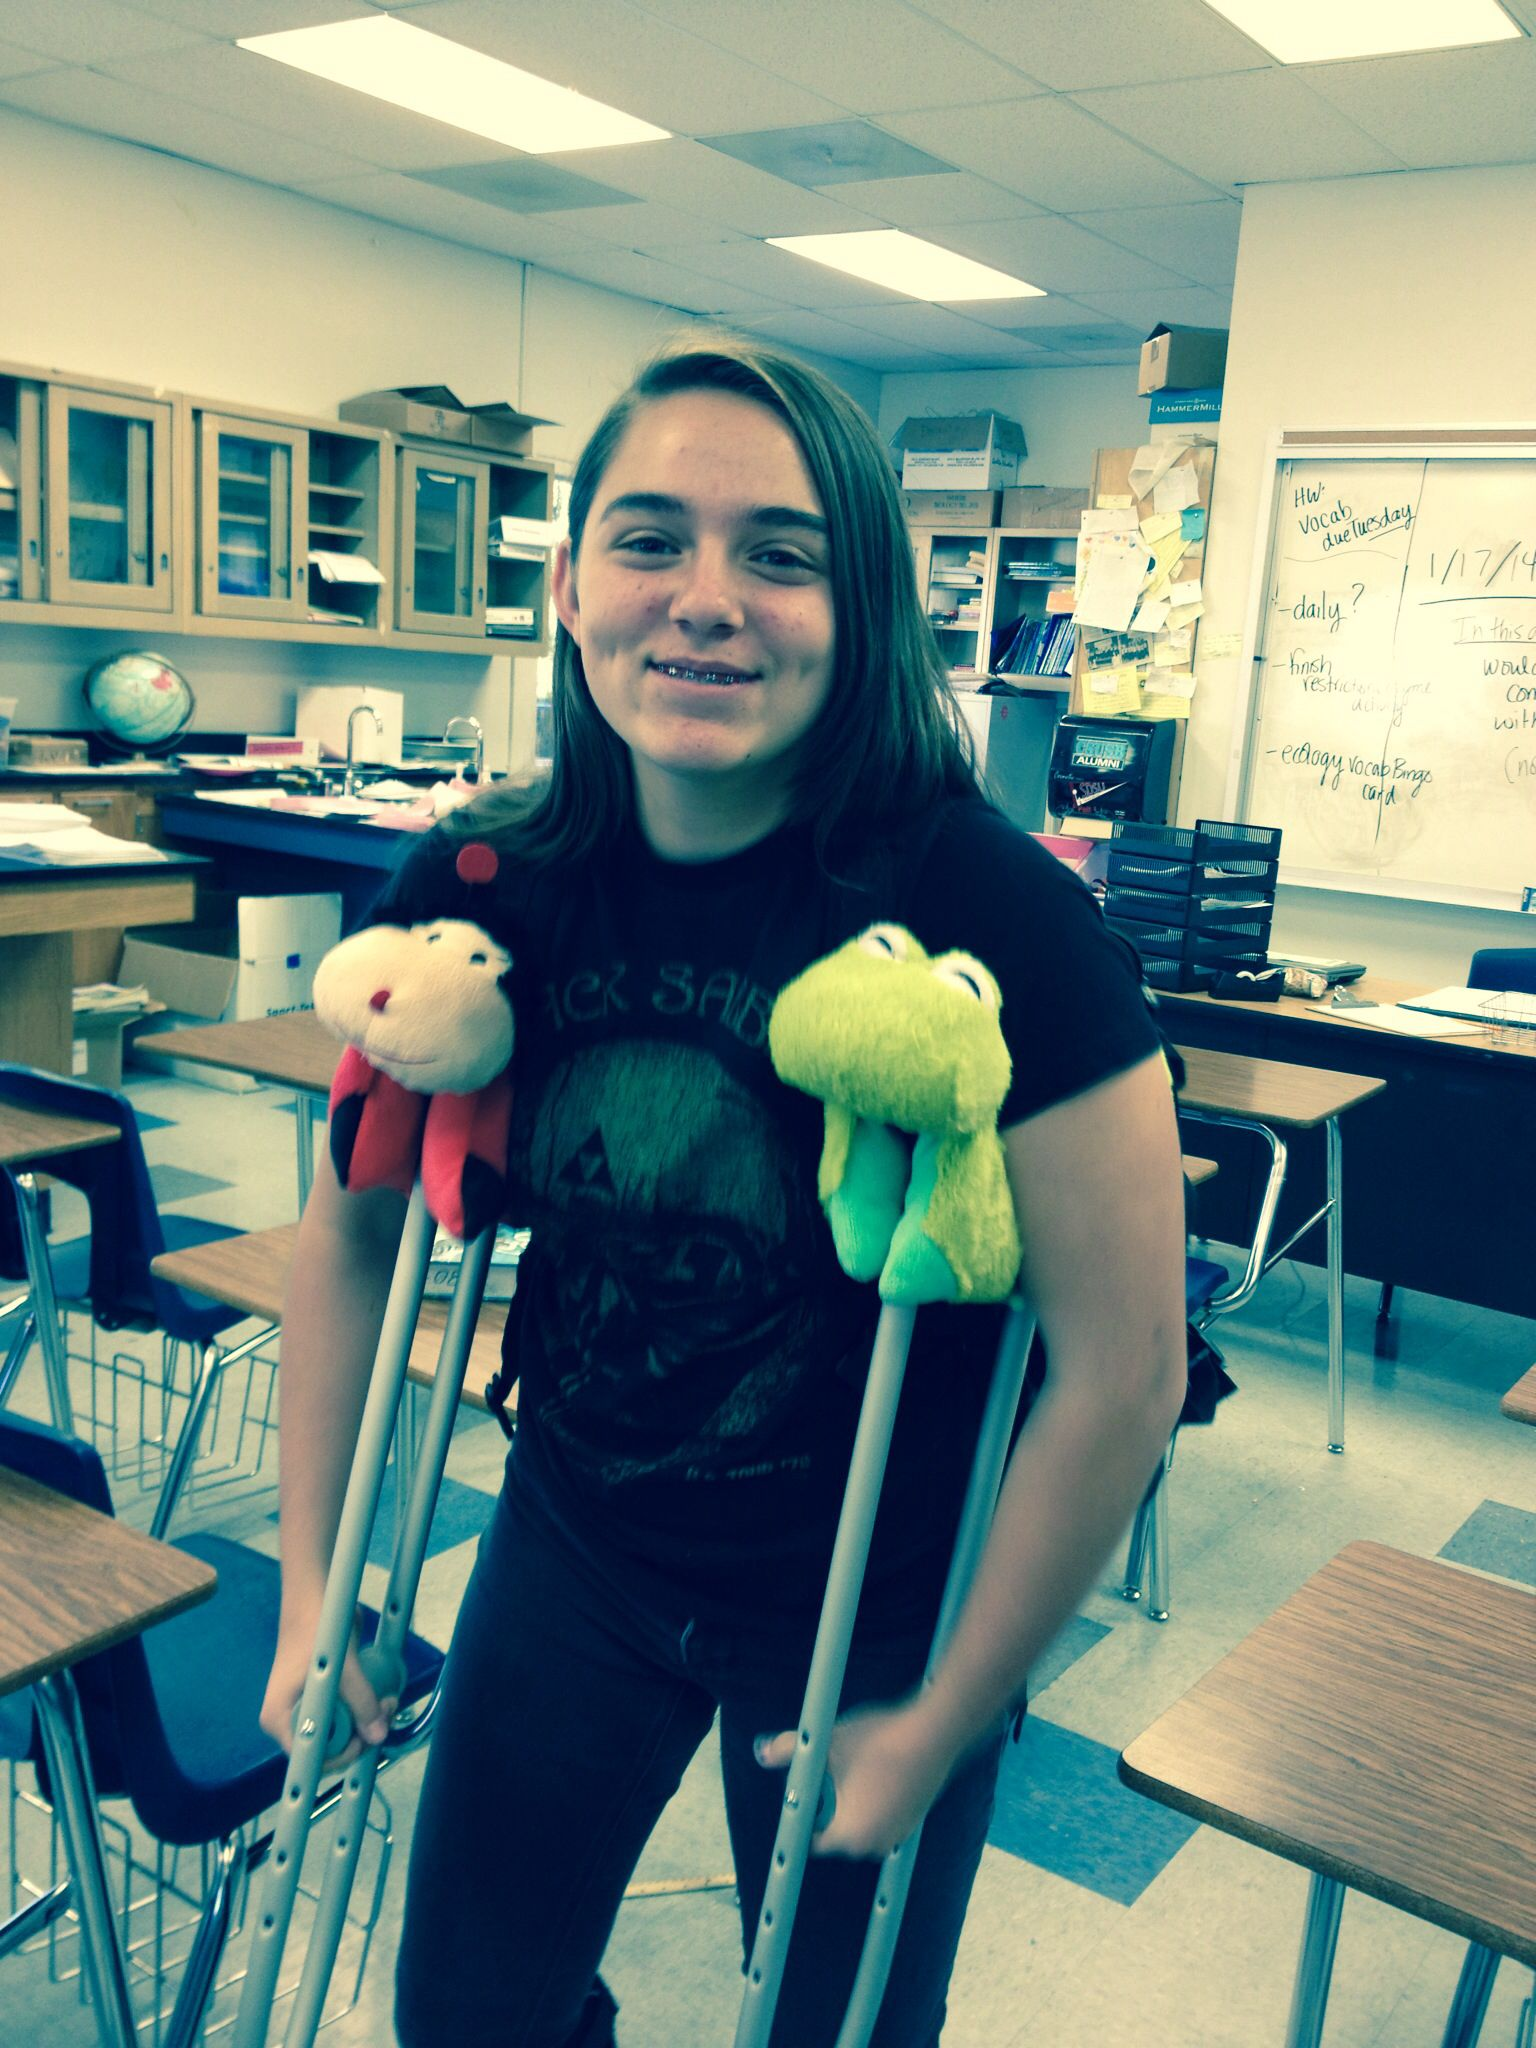 This is the coolest idea!!!! Pillow pets for ur crutches